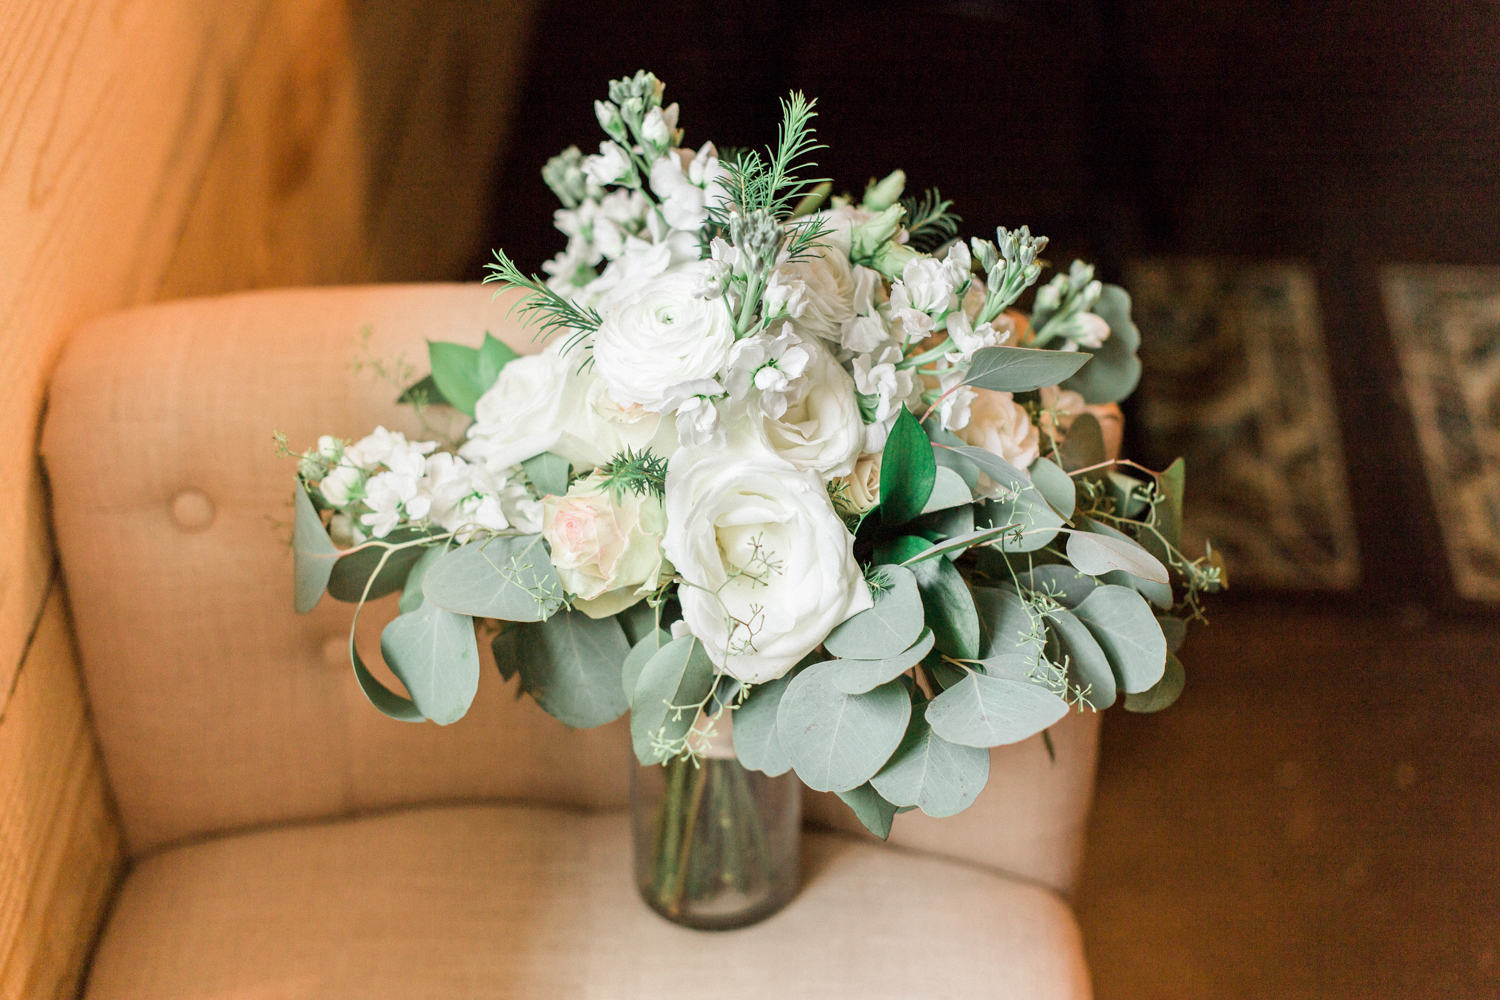 White wedding bouquet with eucalyptus. Summer, outdoor, barn wedding in north Georgia at Hays McDonald Farm in Jefferson, Georgia. Photo by Kesia Marie Photography - Fine Art Wedding Photographer.